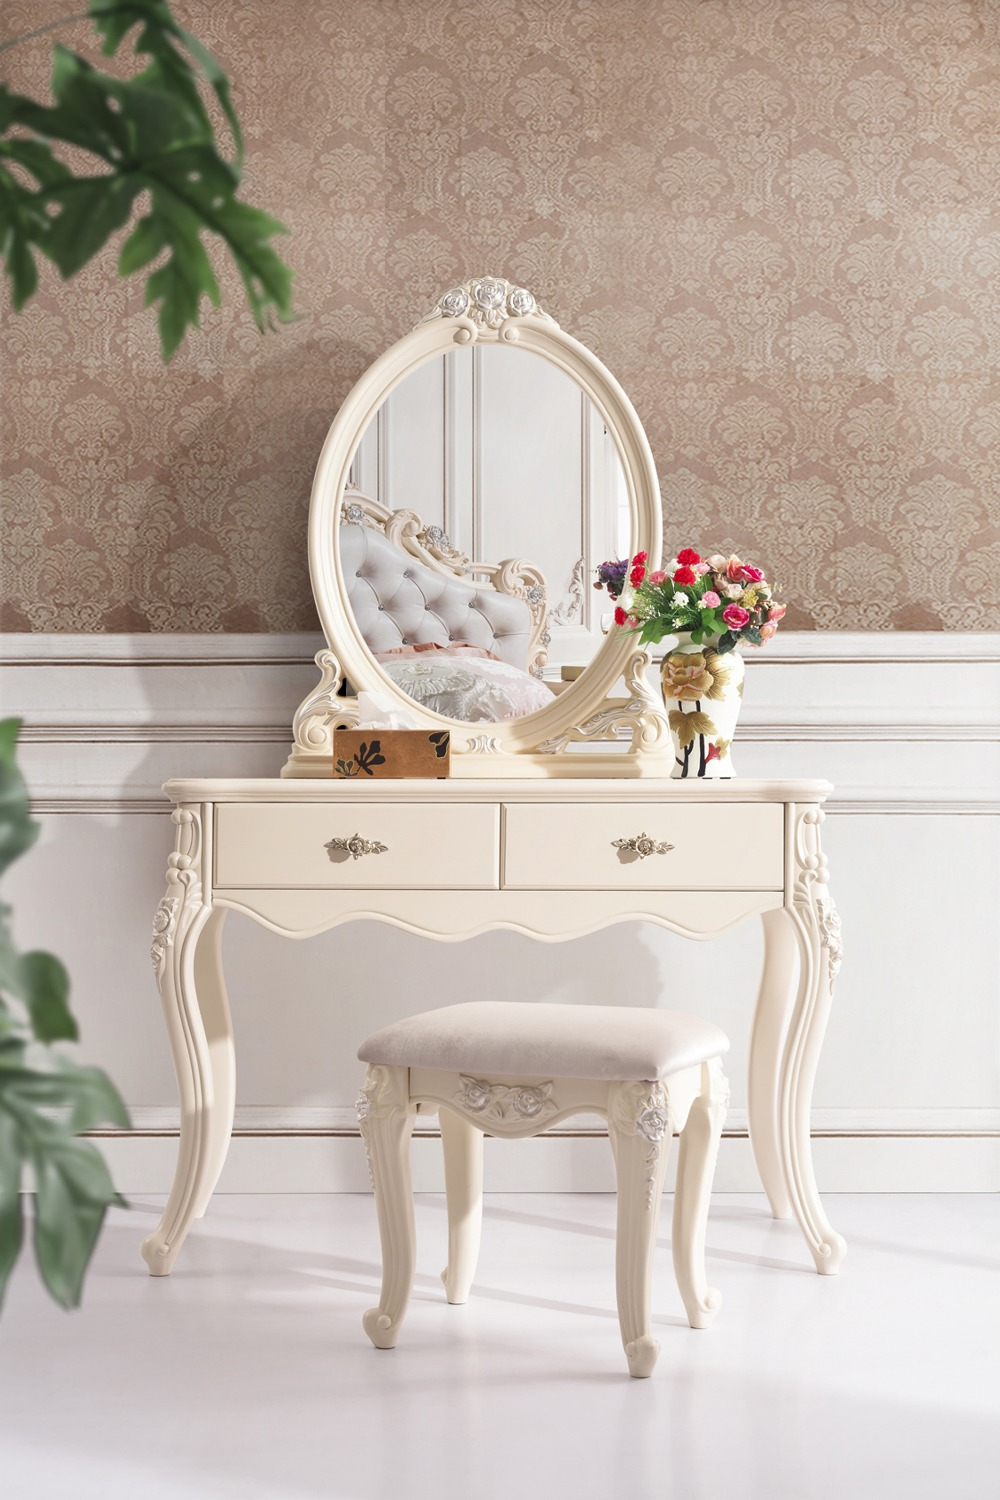 Modern Bedroom Set High Class European Style Dressing Table Dresser With Stool Chair Hand Carved Solid Wood Furniture